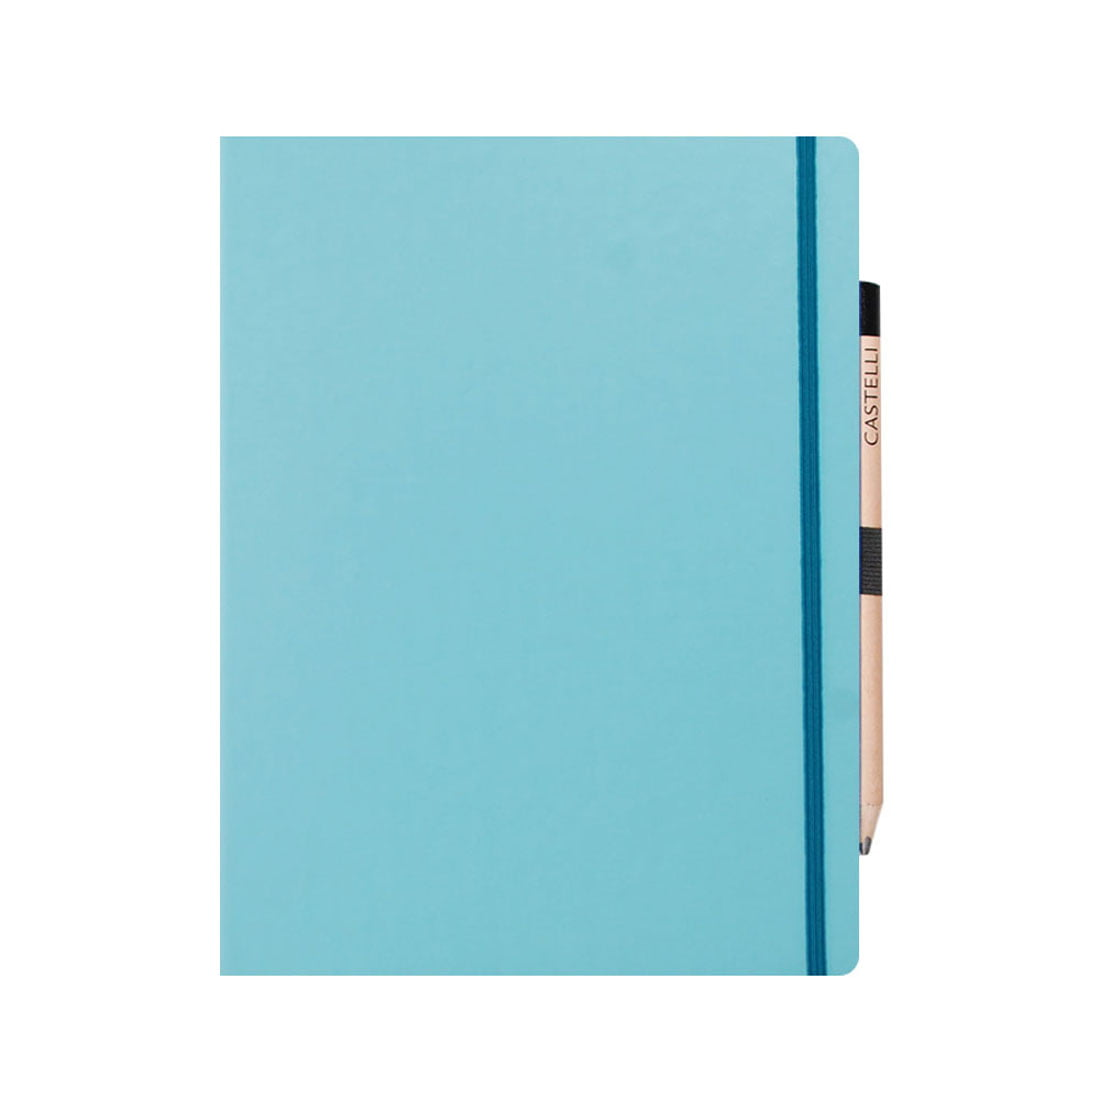 Tuscon soft touch cover note book with a retro style pencil.